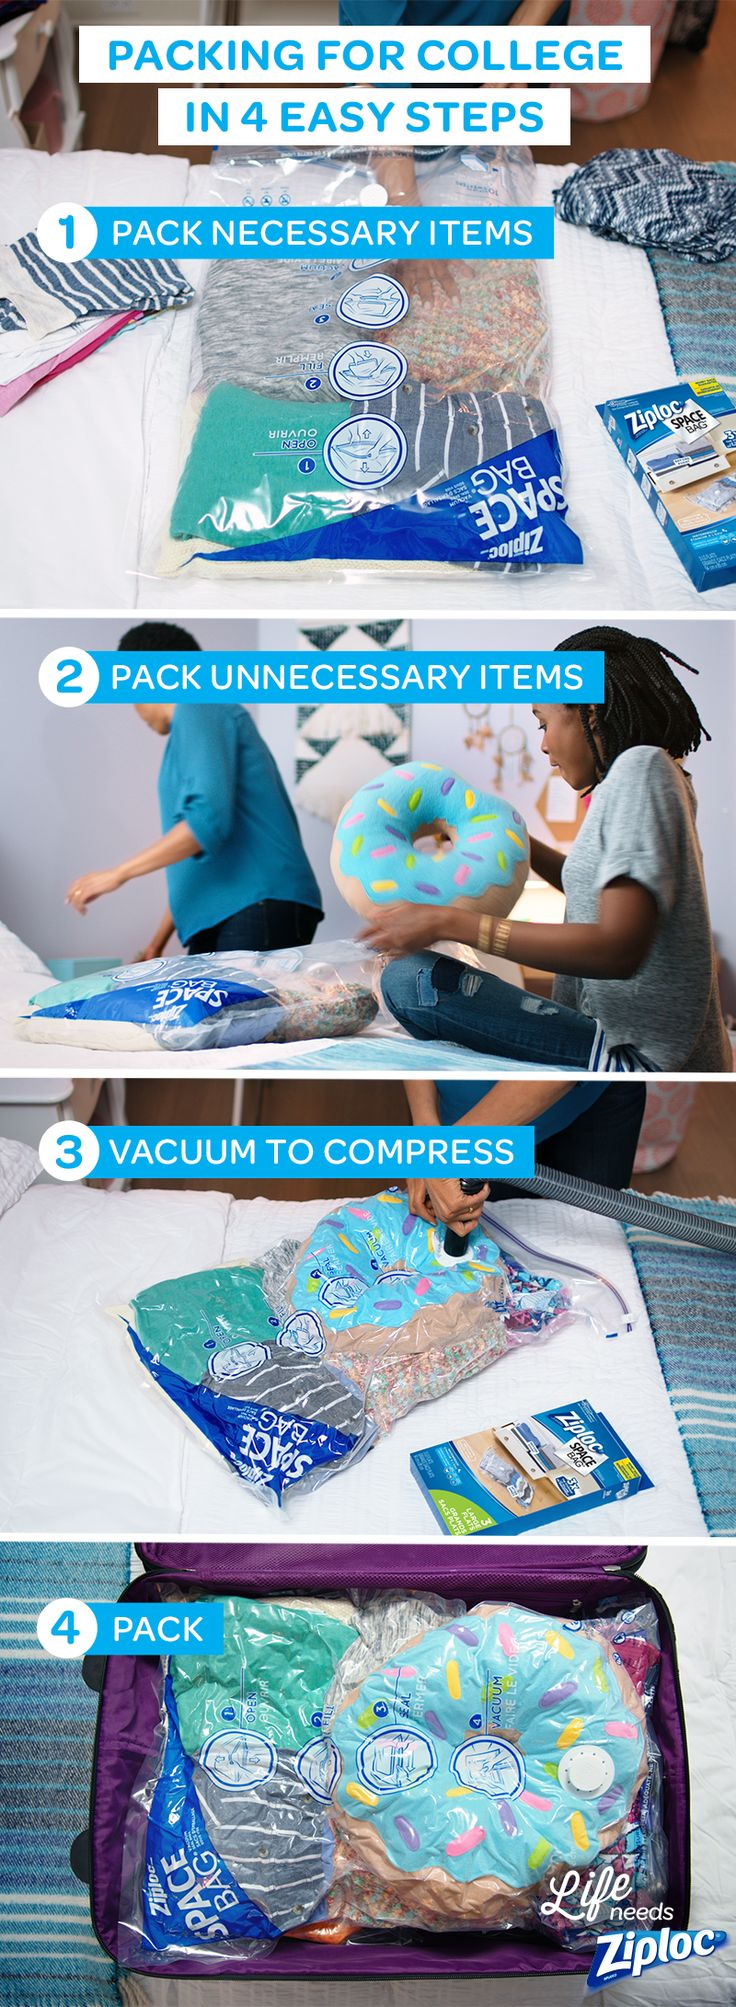 Go back to school with everything on your checklist. Pack your clothes, towels, bedding, and pillows for college with a Ziploc® Space Bag® compression bag. Each bag lets you pack up to 3x as much, so you can easily fit the basic essentials as well as the little extras for your dorm room.